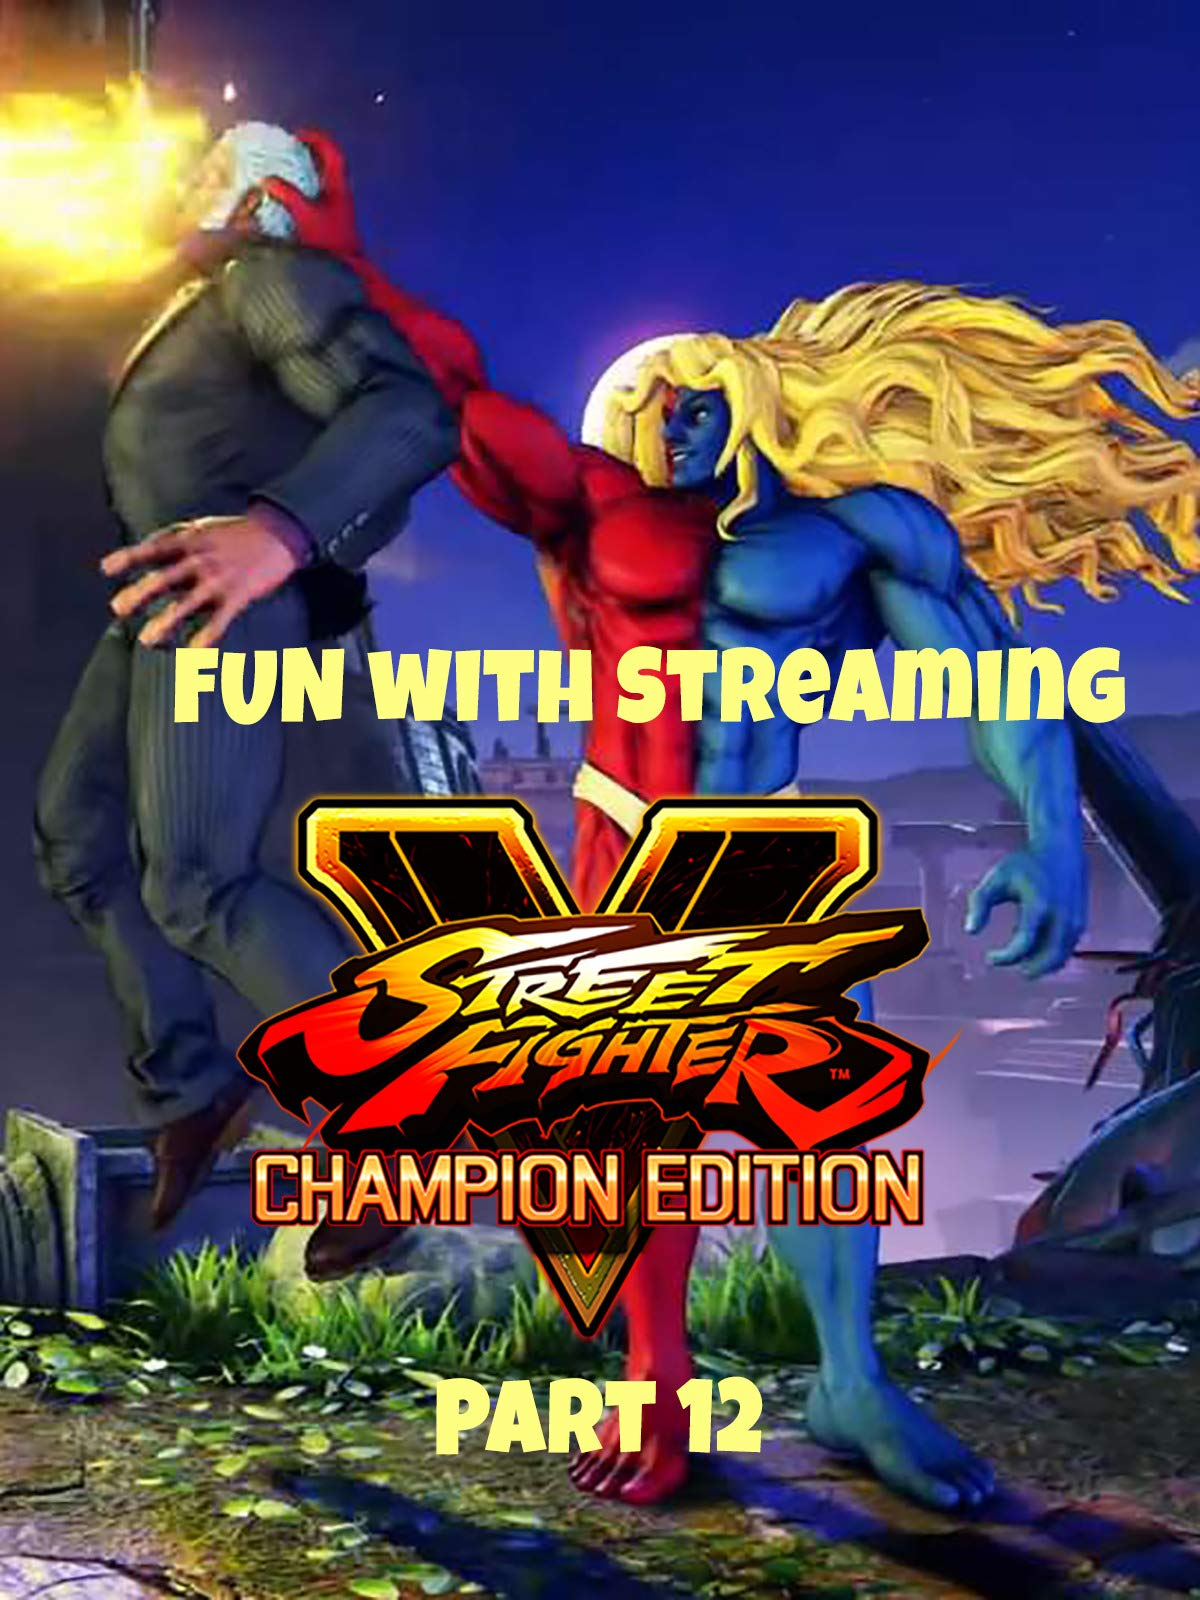 Clip: Fun with Streaming Street Fighter V Champion Edition Part 12 on Amazon Prime Video UK